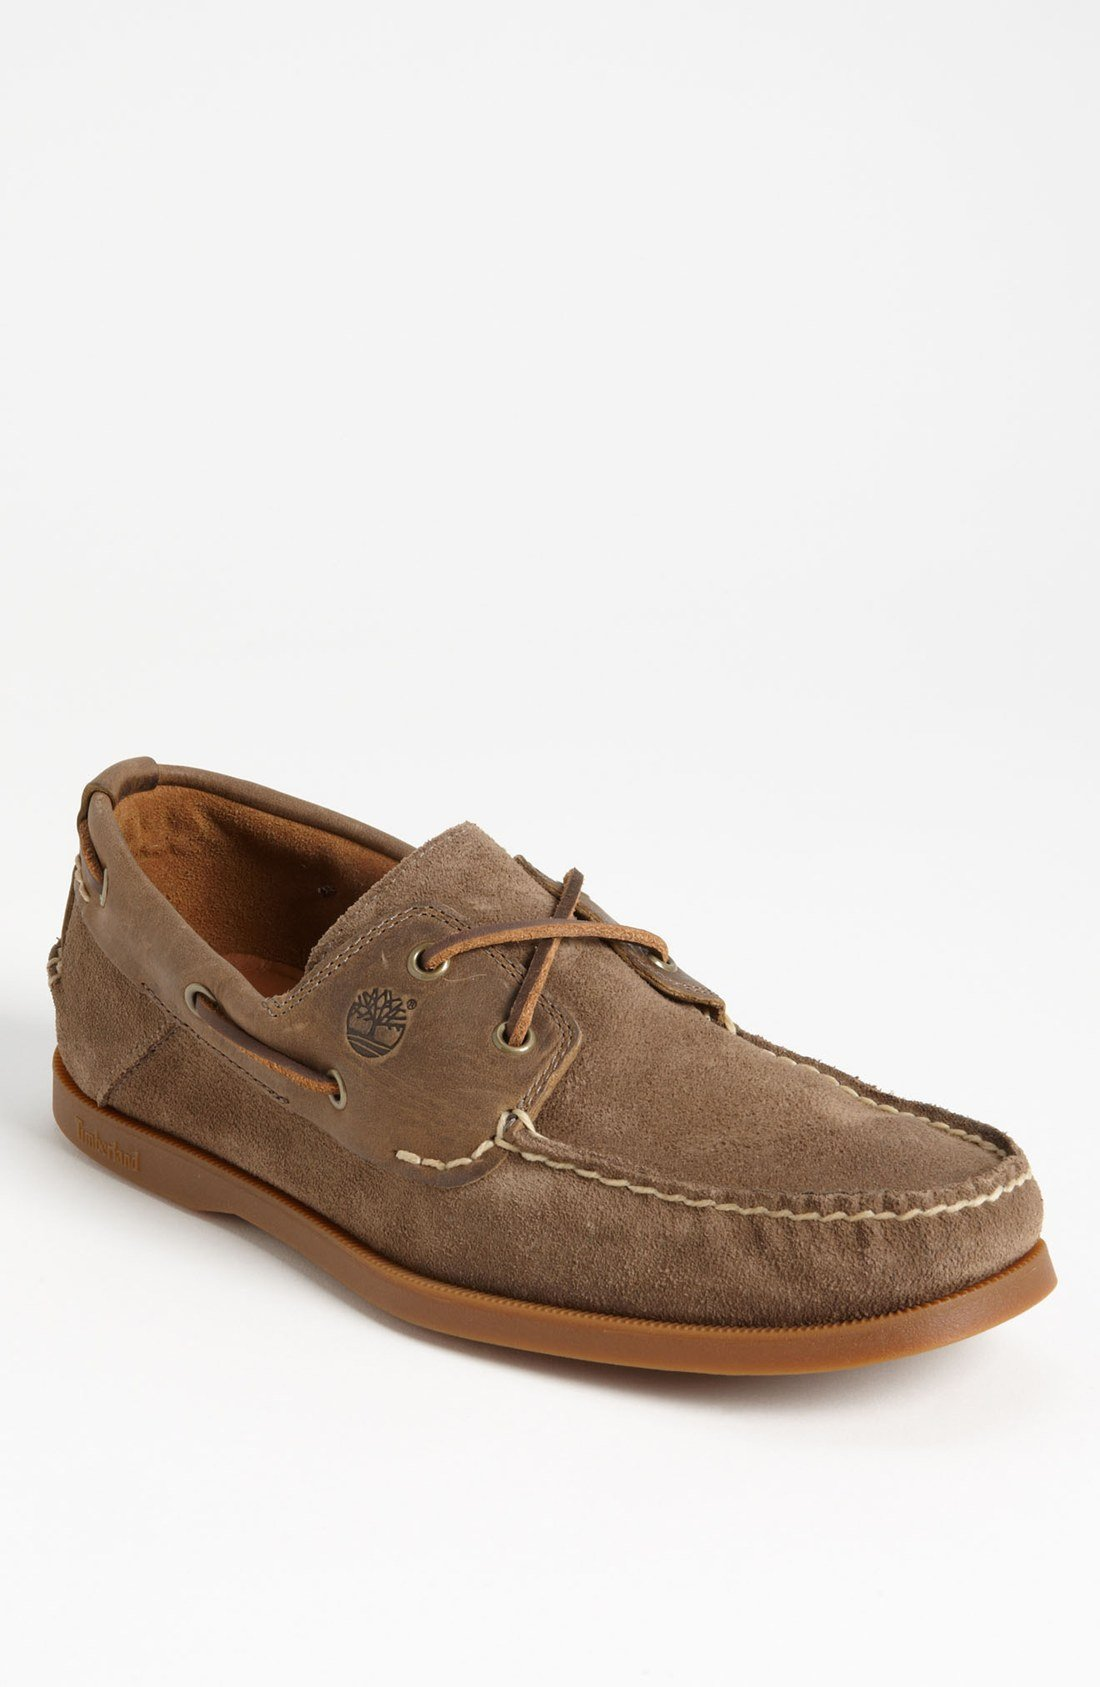 Eastland Boat Shoe Sizing